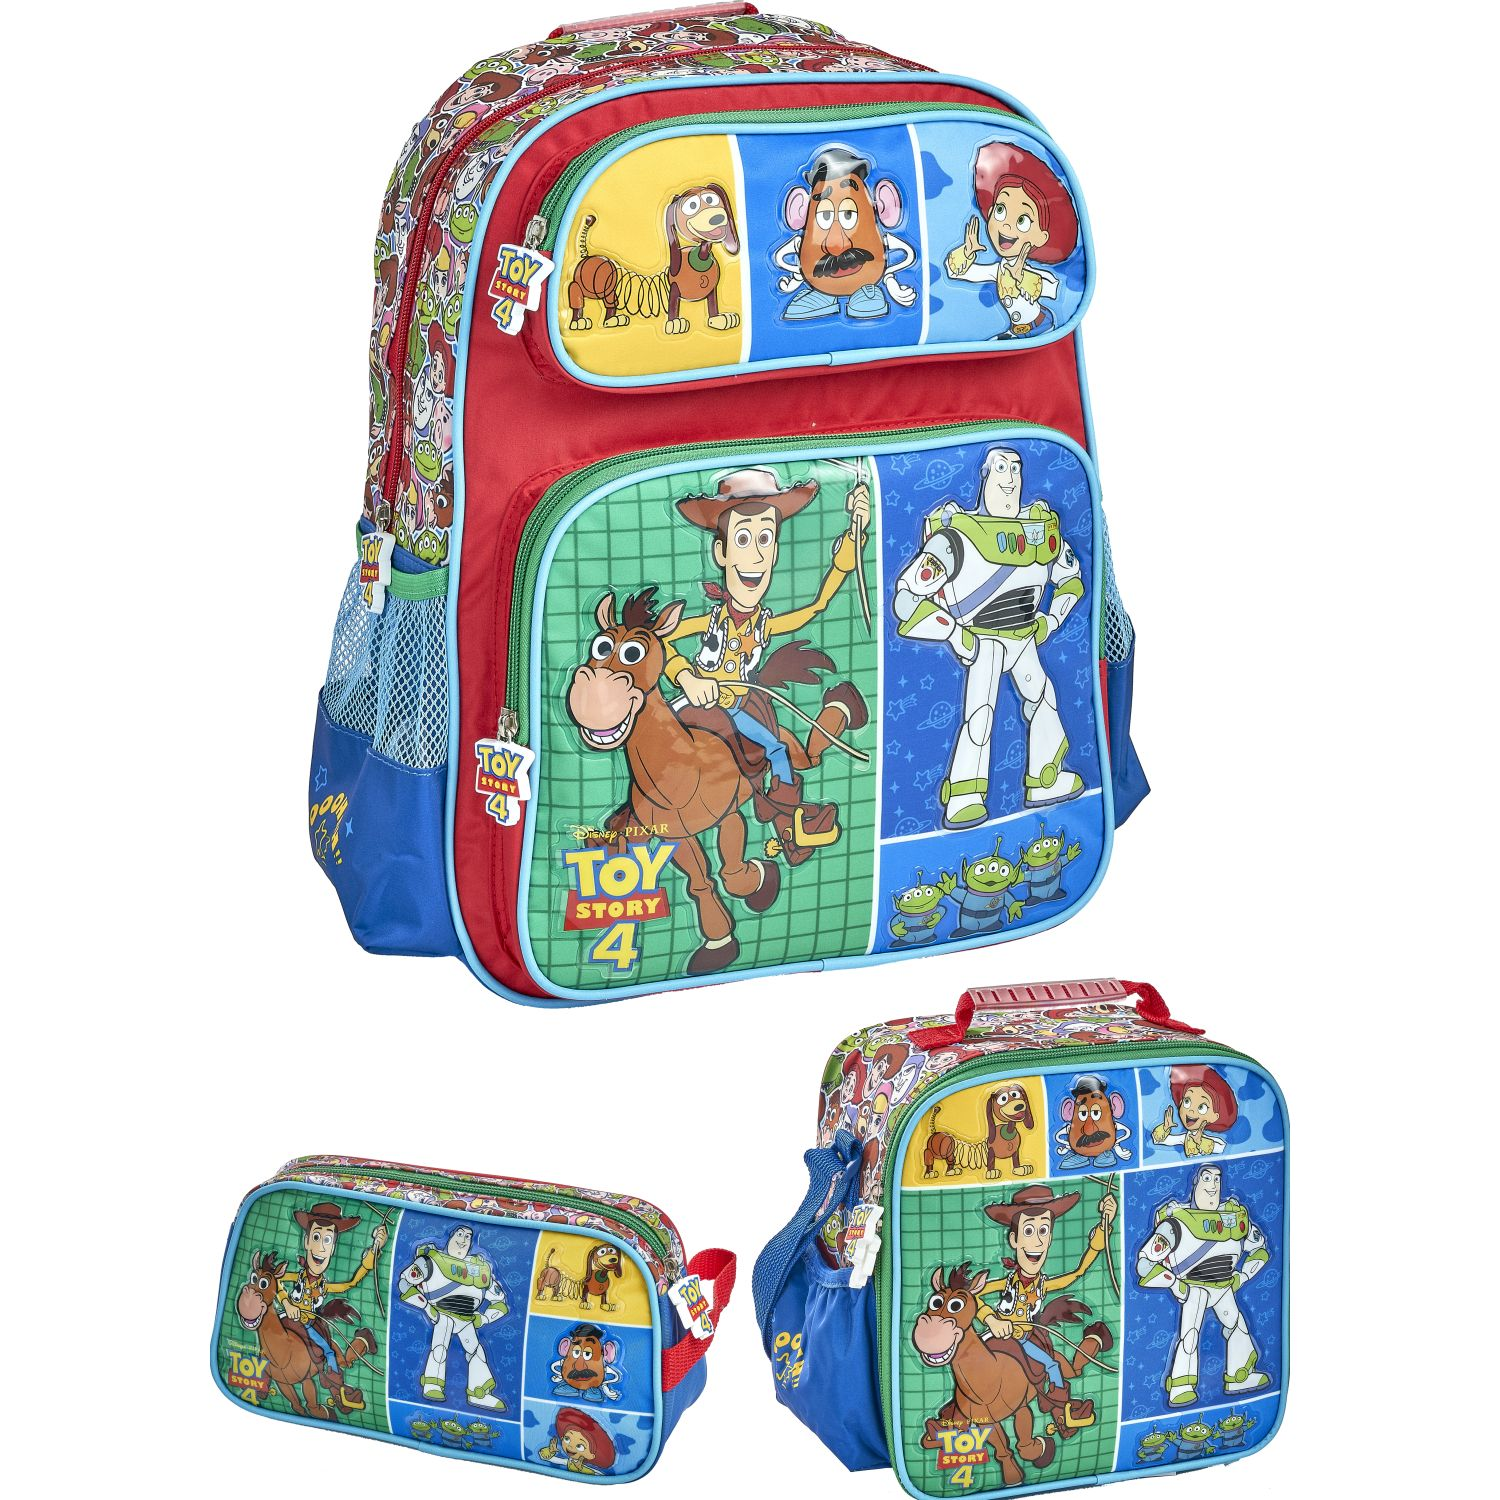 Toy Story 20 Scool Toy Story Set Pre Escolar Pvc Azul / verde Mochilas